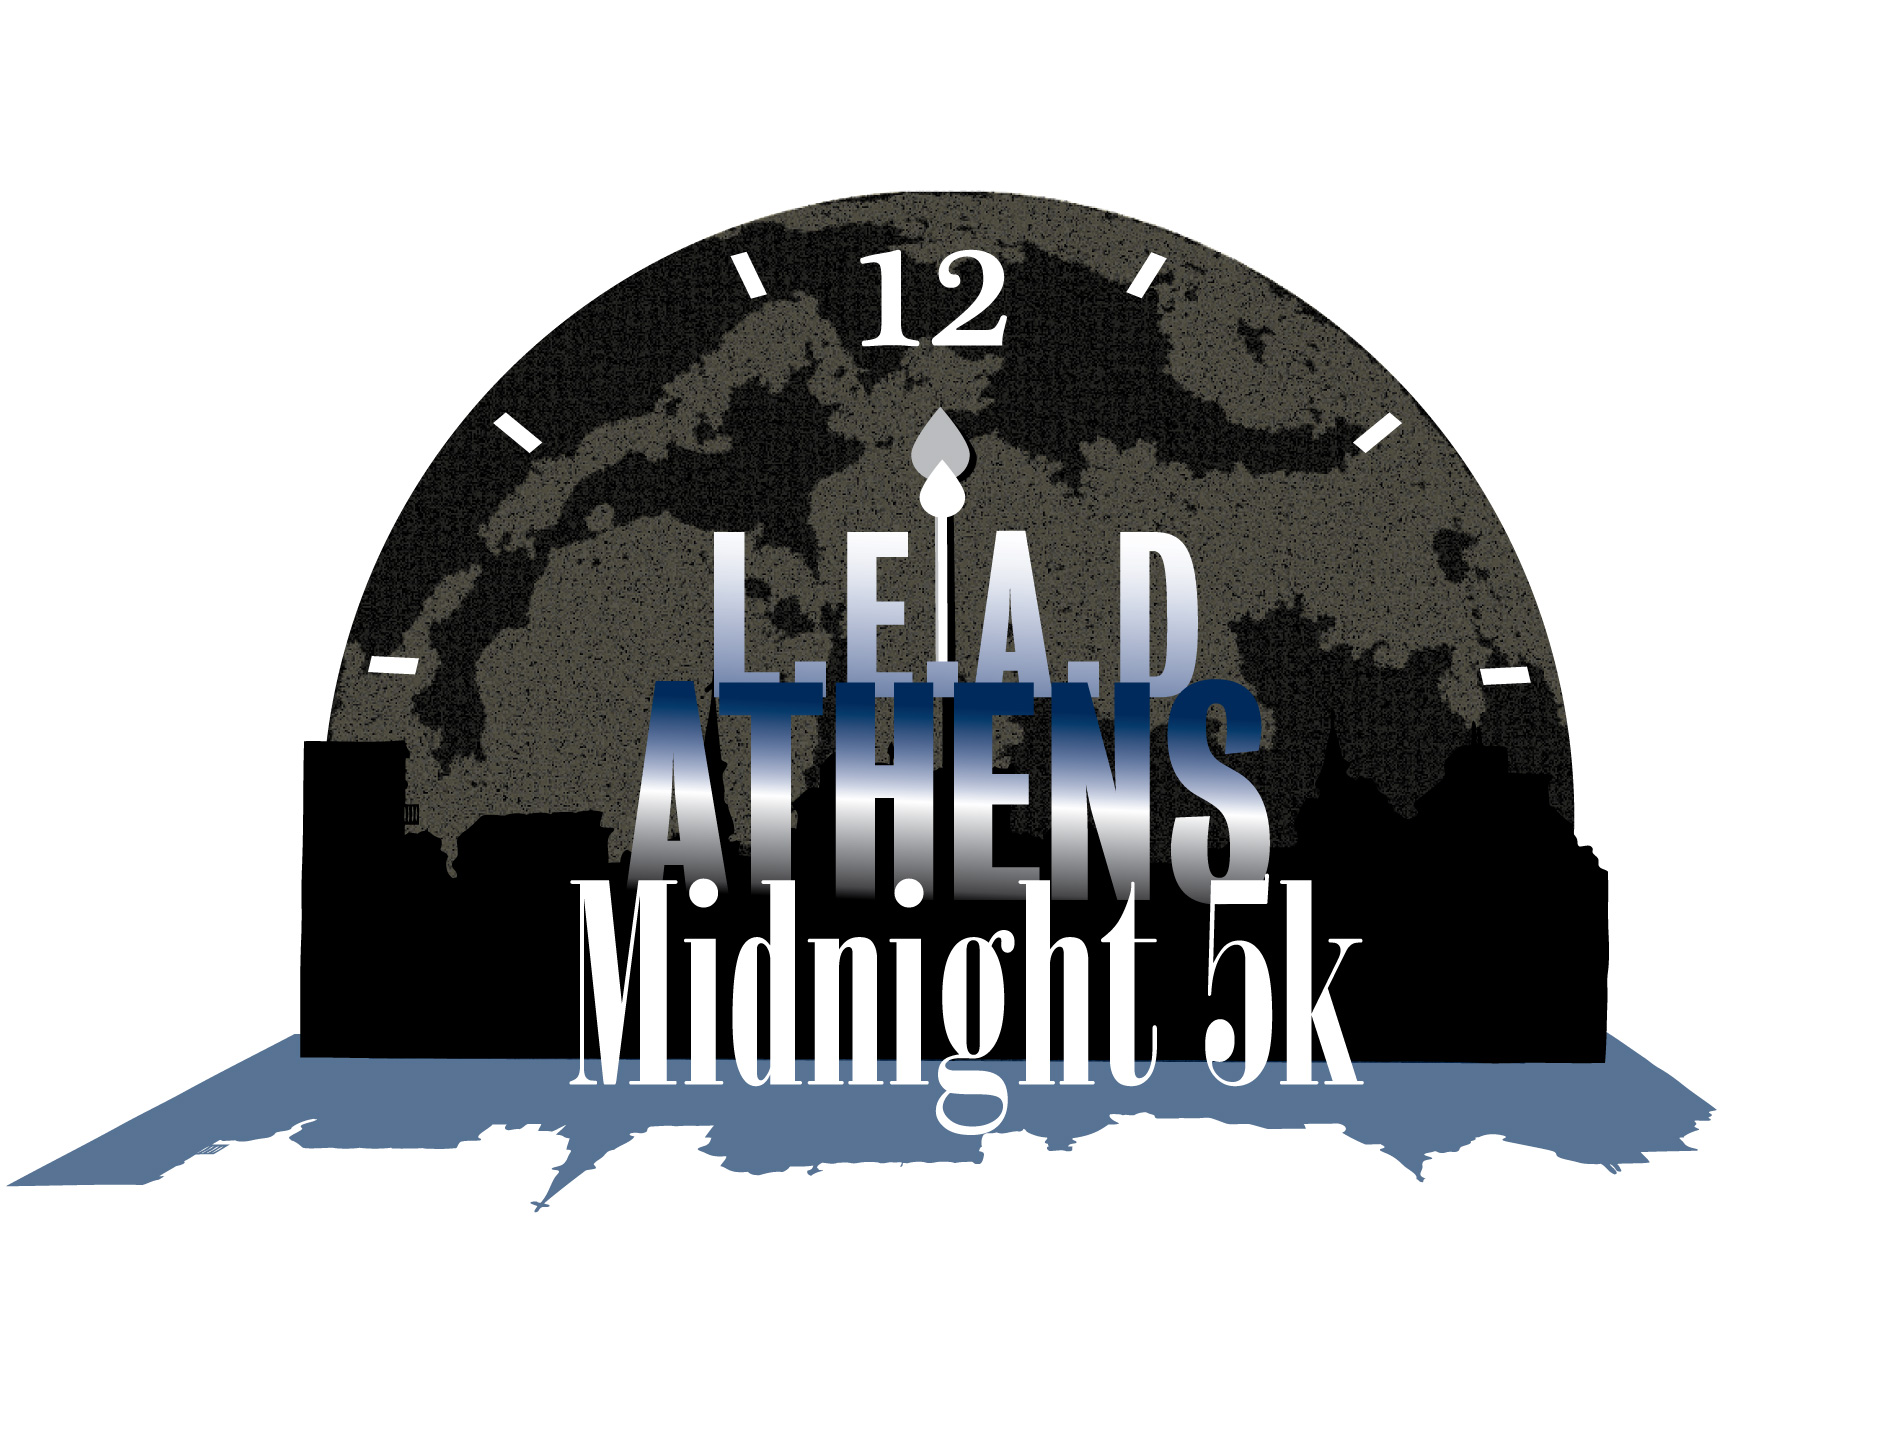 LeadAthens-01.jpg